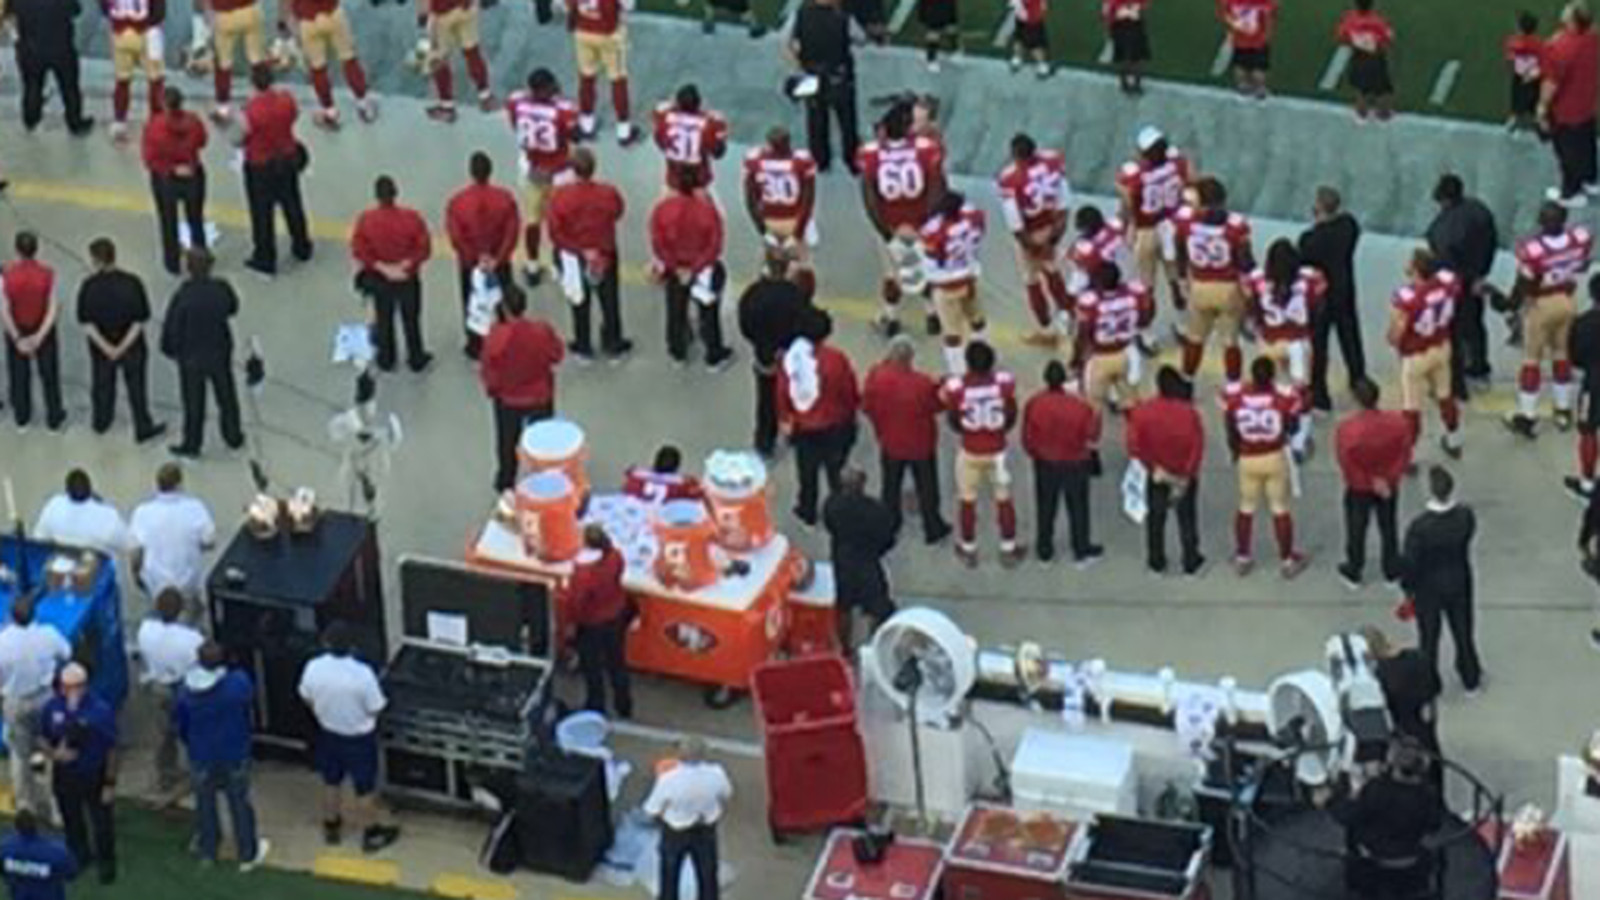 colin kaepernick explains his decision to sit during national colin kaepernick explains his decision to sit during national anthem niners nation